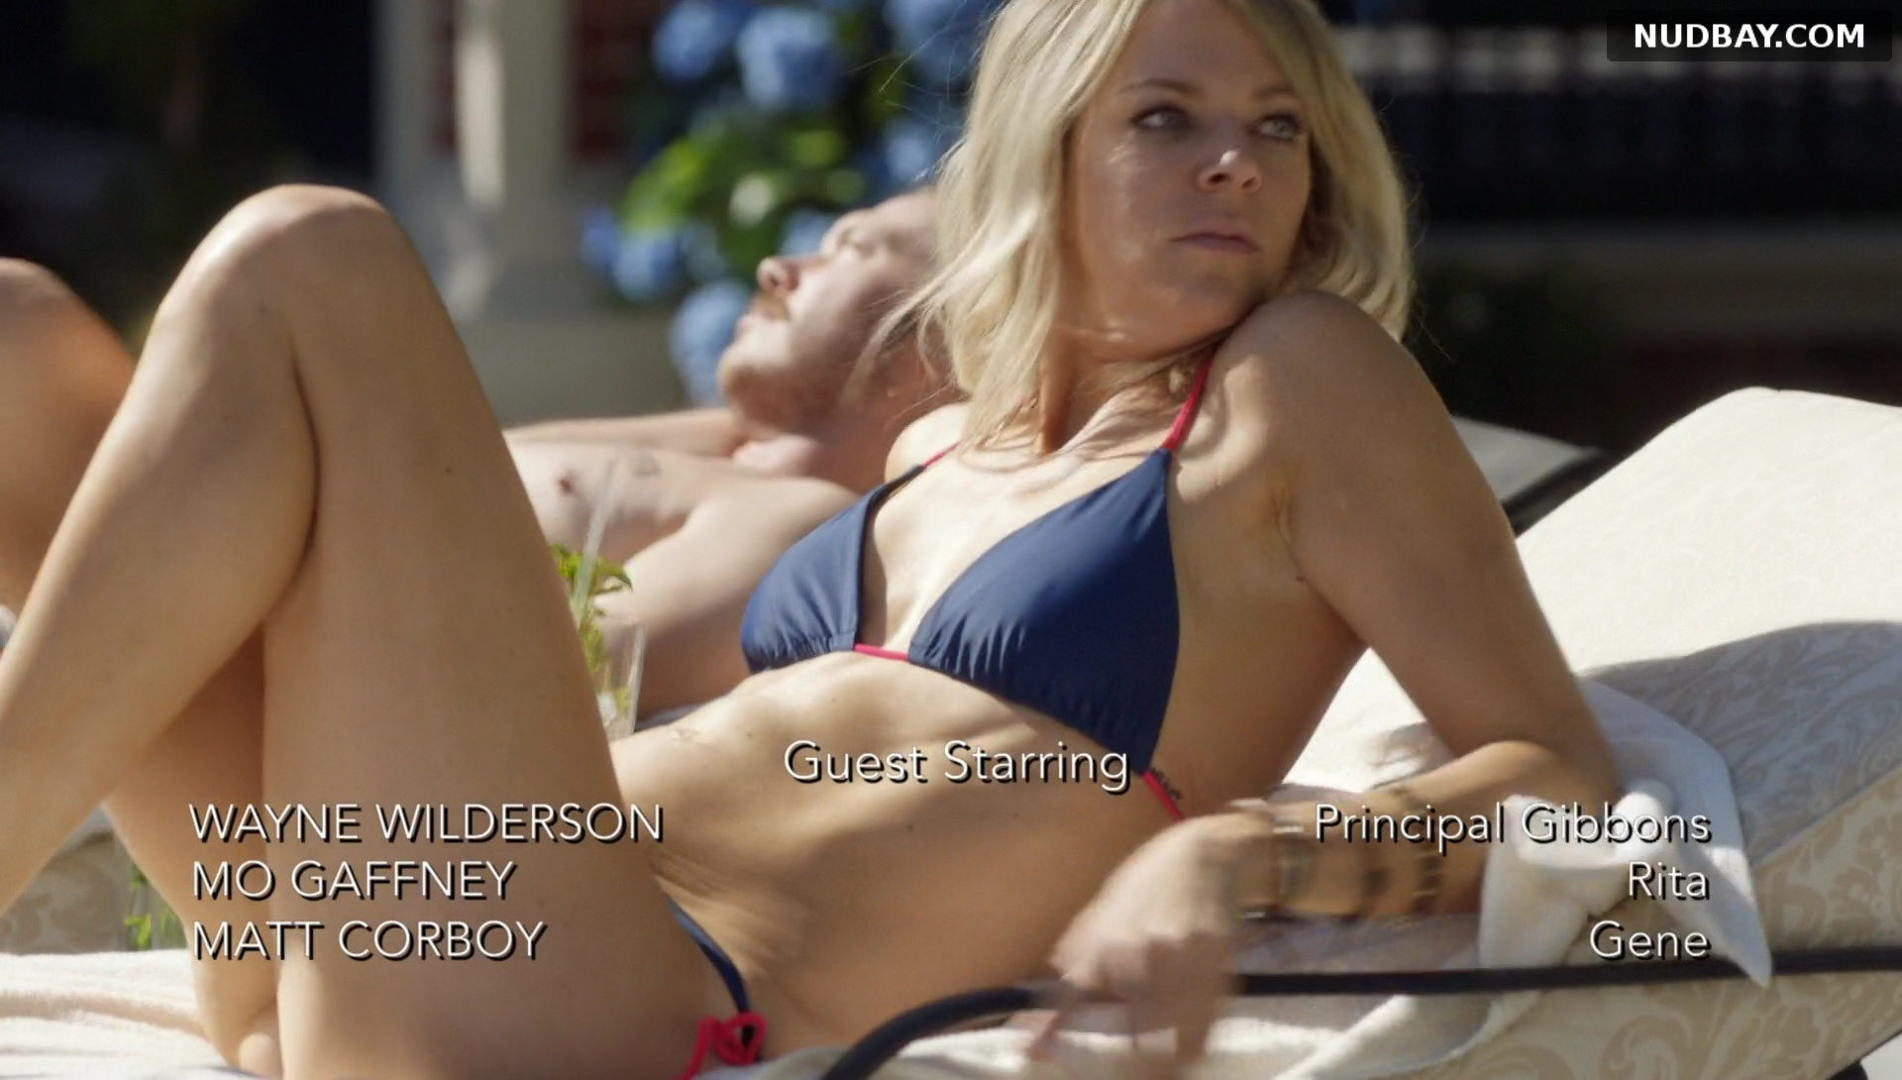 Kaitlin Olson crotch butt in The Mick (2017)